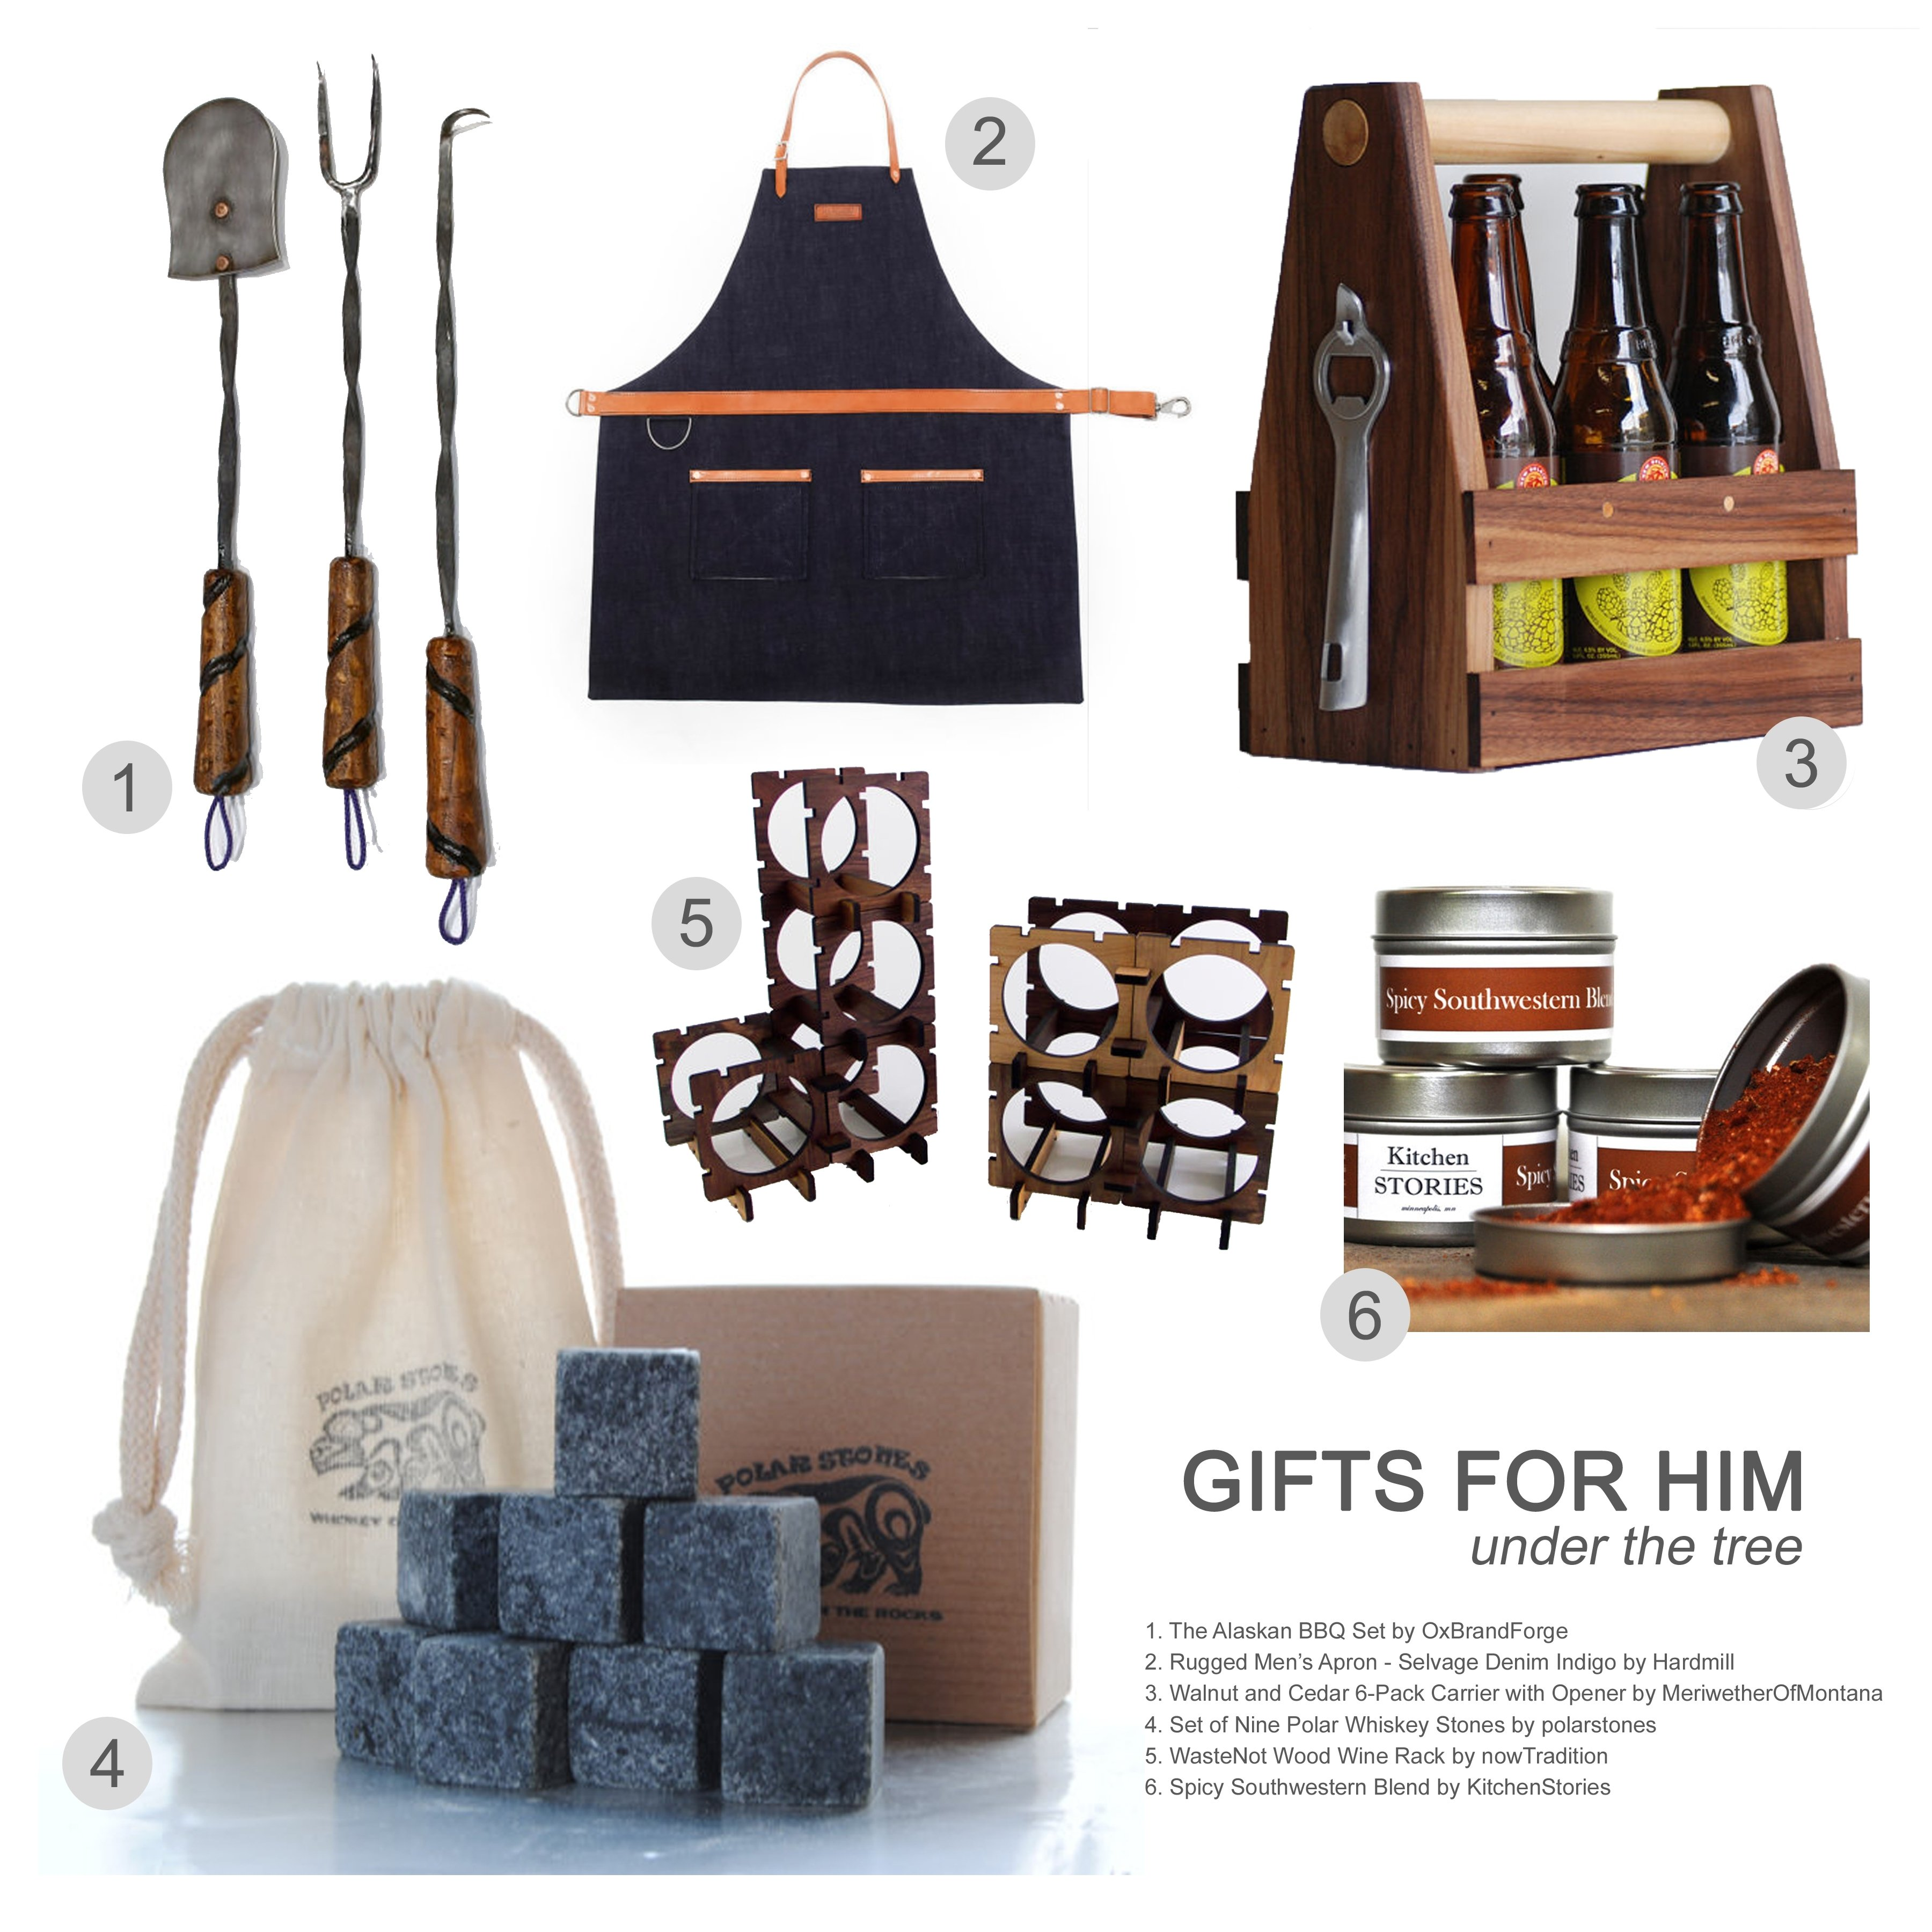 foodie gift guide 2013: gifts for him